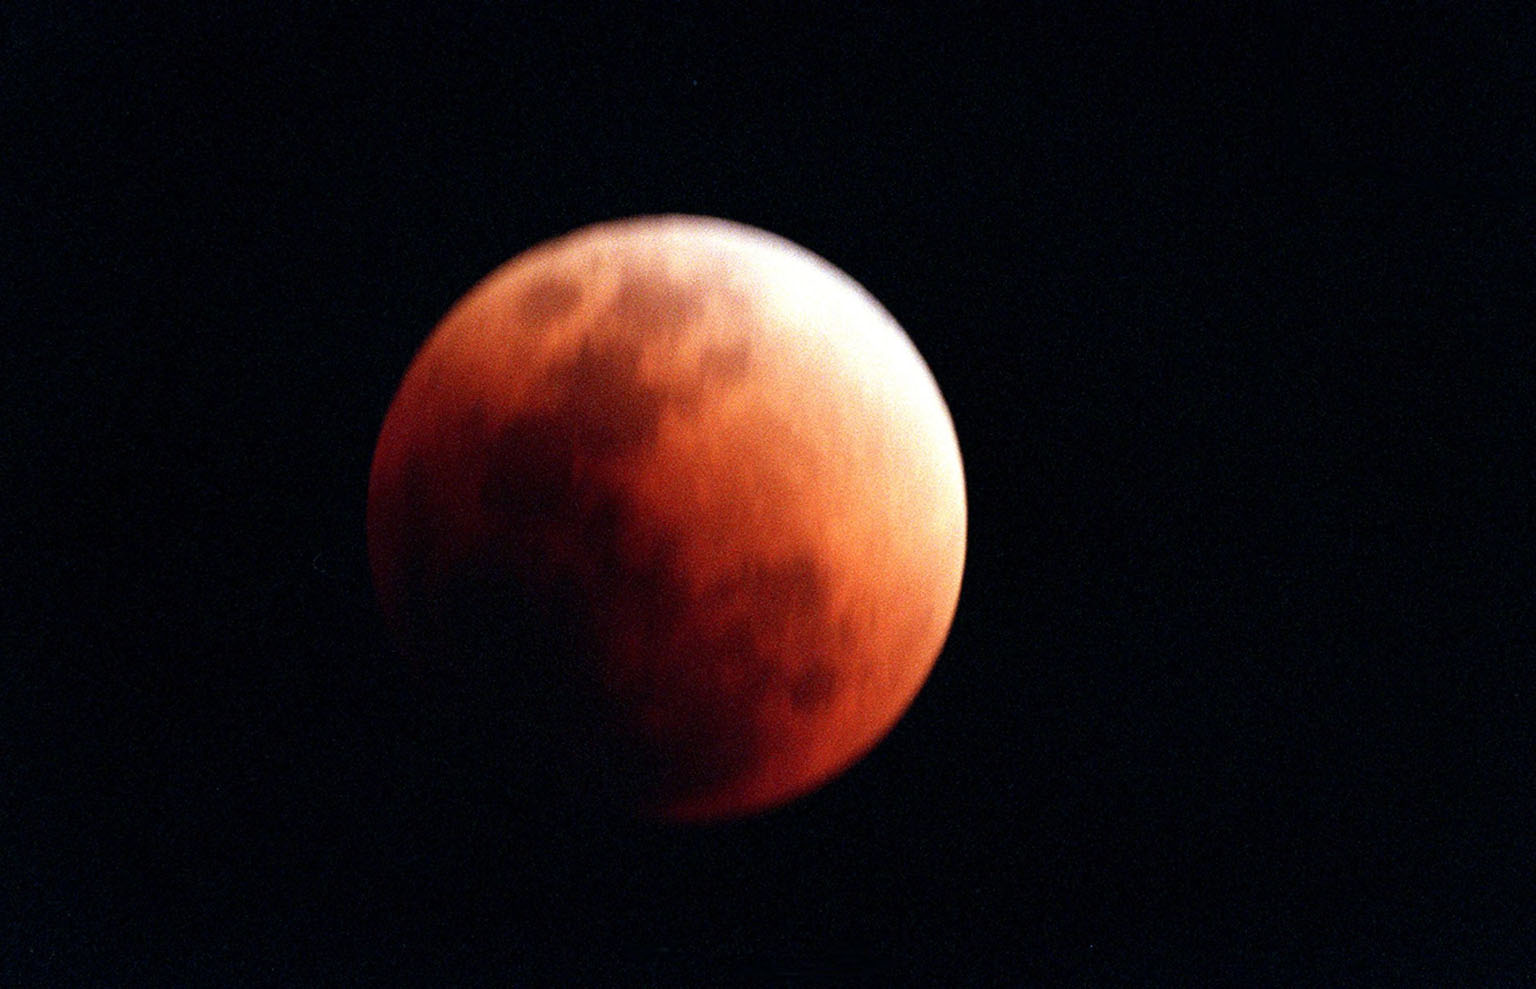 In this lunar eclipse viewed from Merritt Island, Fla., at midnight, the full moon takes on a dark red color because it is being lighted slightly by sunlight passing through the Earth's atmosphere. This light has the blue component preferentially scattered out (this is also why the sky appears blue from the surface of the Earth), leaving faint reddish light to illuminate the Moon during the eclipse. Eclipses occur when the Sun, Earth and Moon line up. They are rare because the Moon usually passes above or below the imaginary line connecting Earth and the Sun. The Earth casts a shadow that the Moon can pass through -when it does, it is called a lunar eclipse